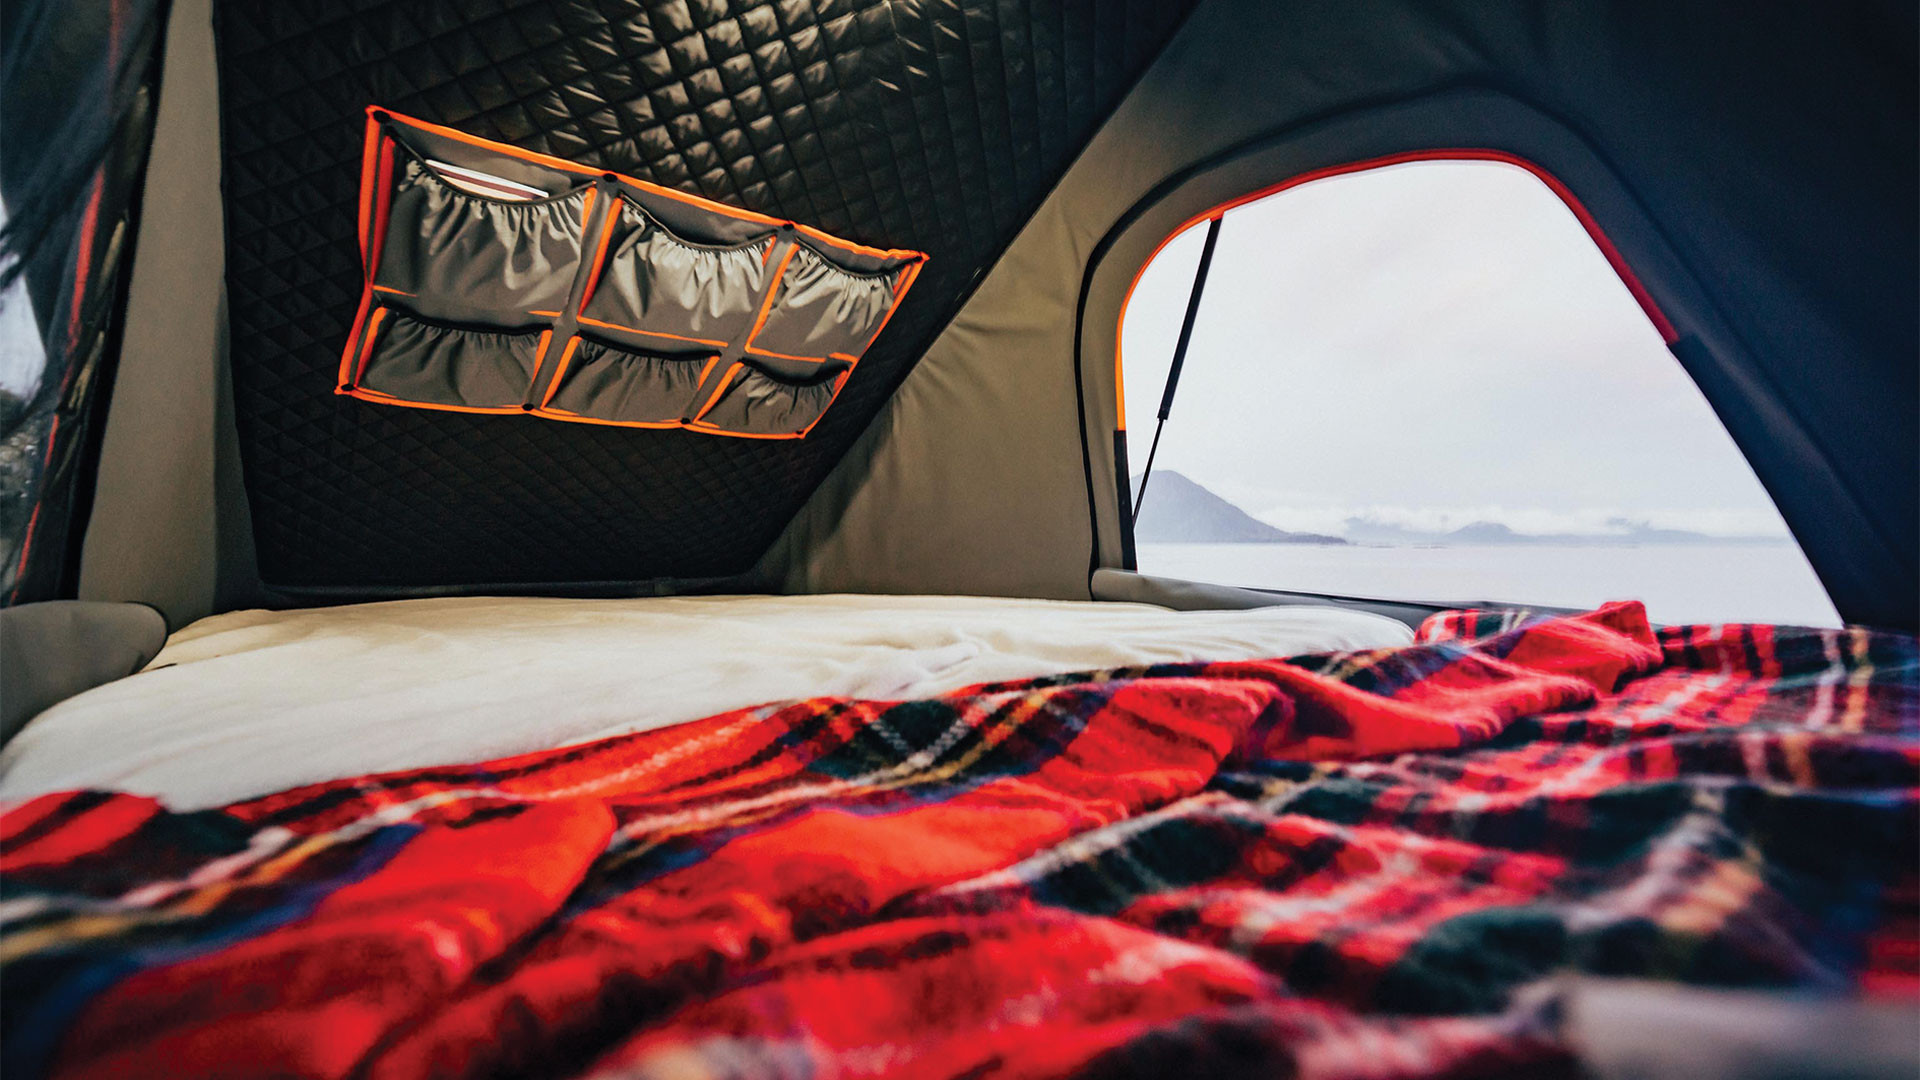 Gears of Travel, Canadian adventure | Mountain view from Chevrolet canopy camper